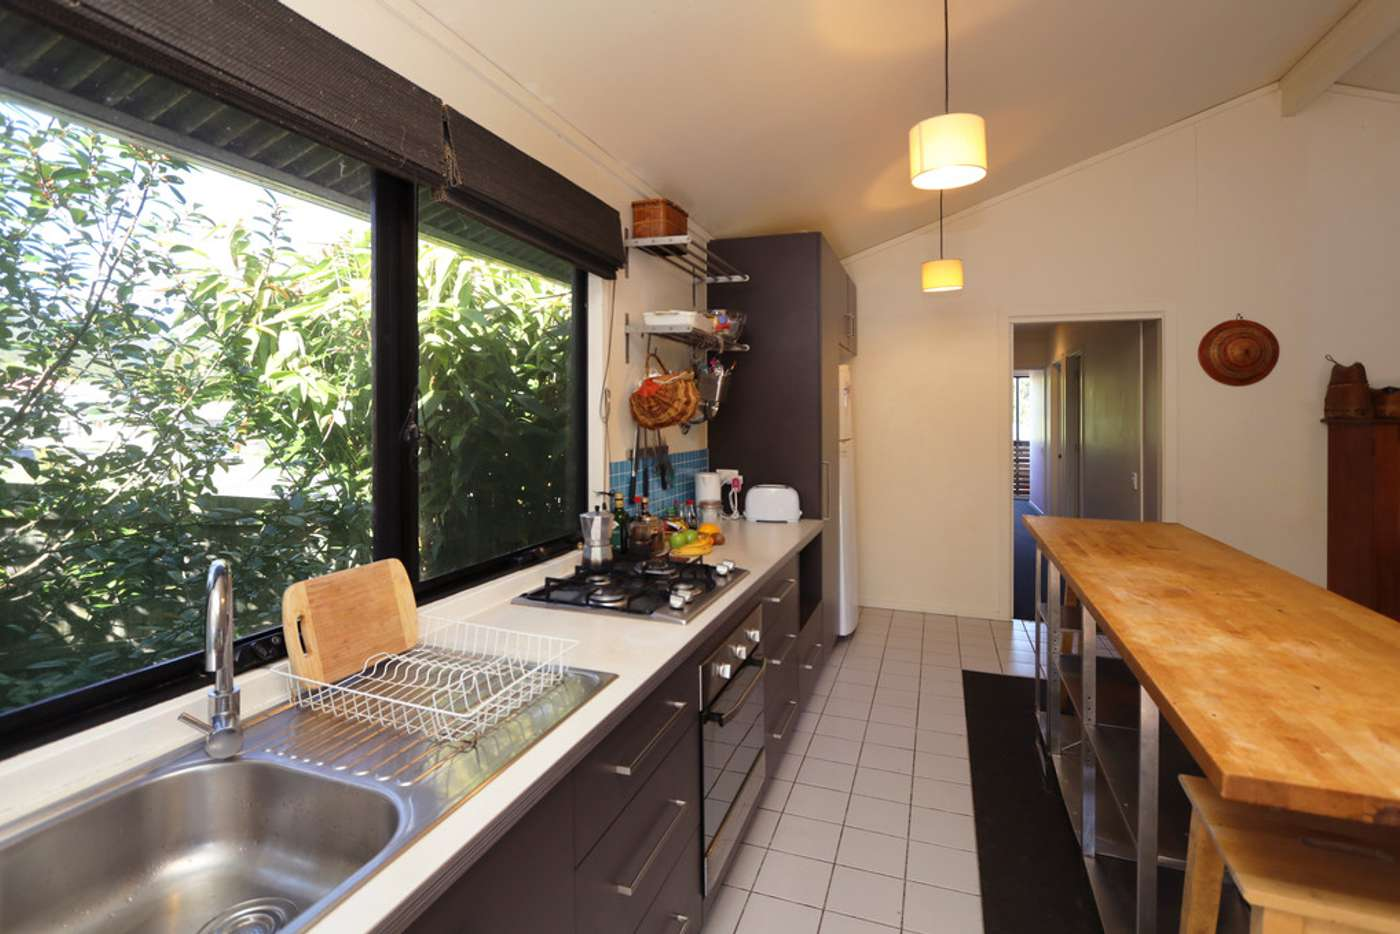 Main view of Homely house listing, 18 Alternative Way, Nimbin NSW 2480